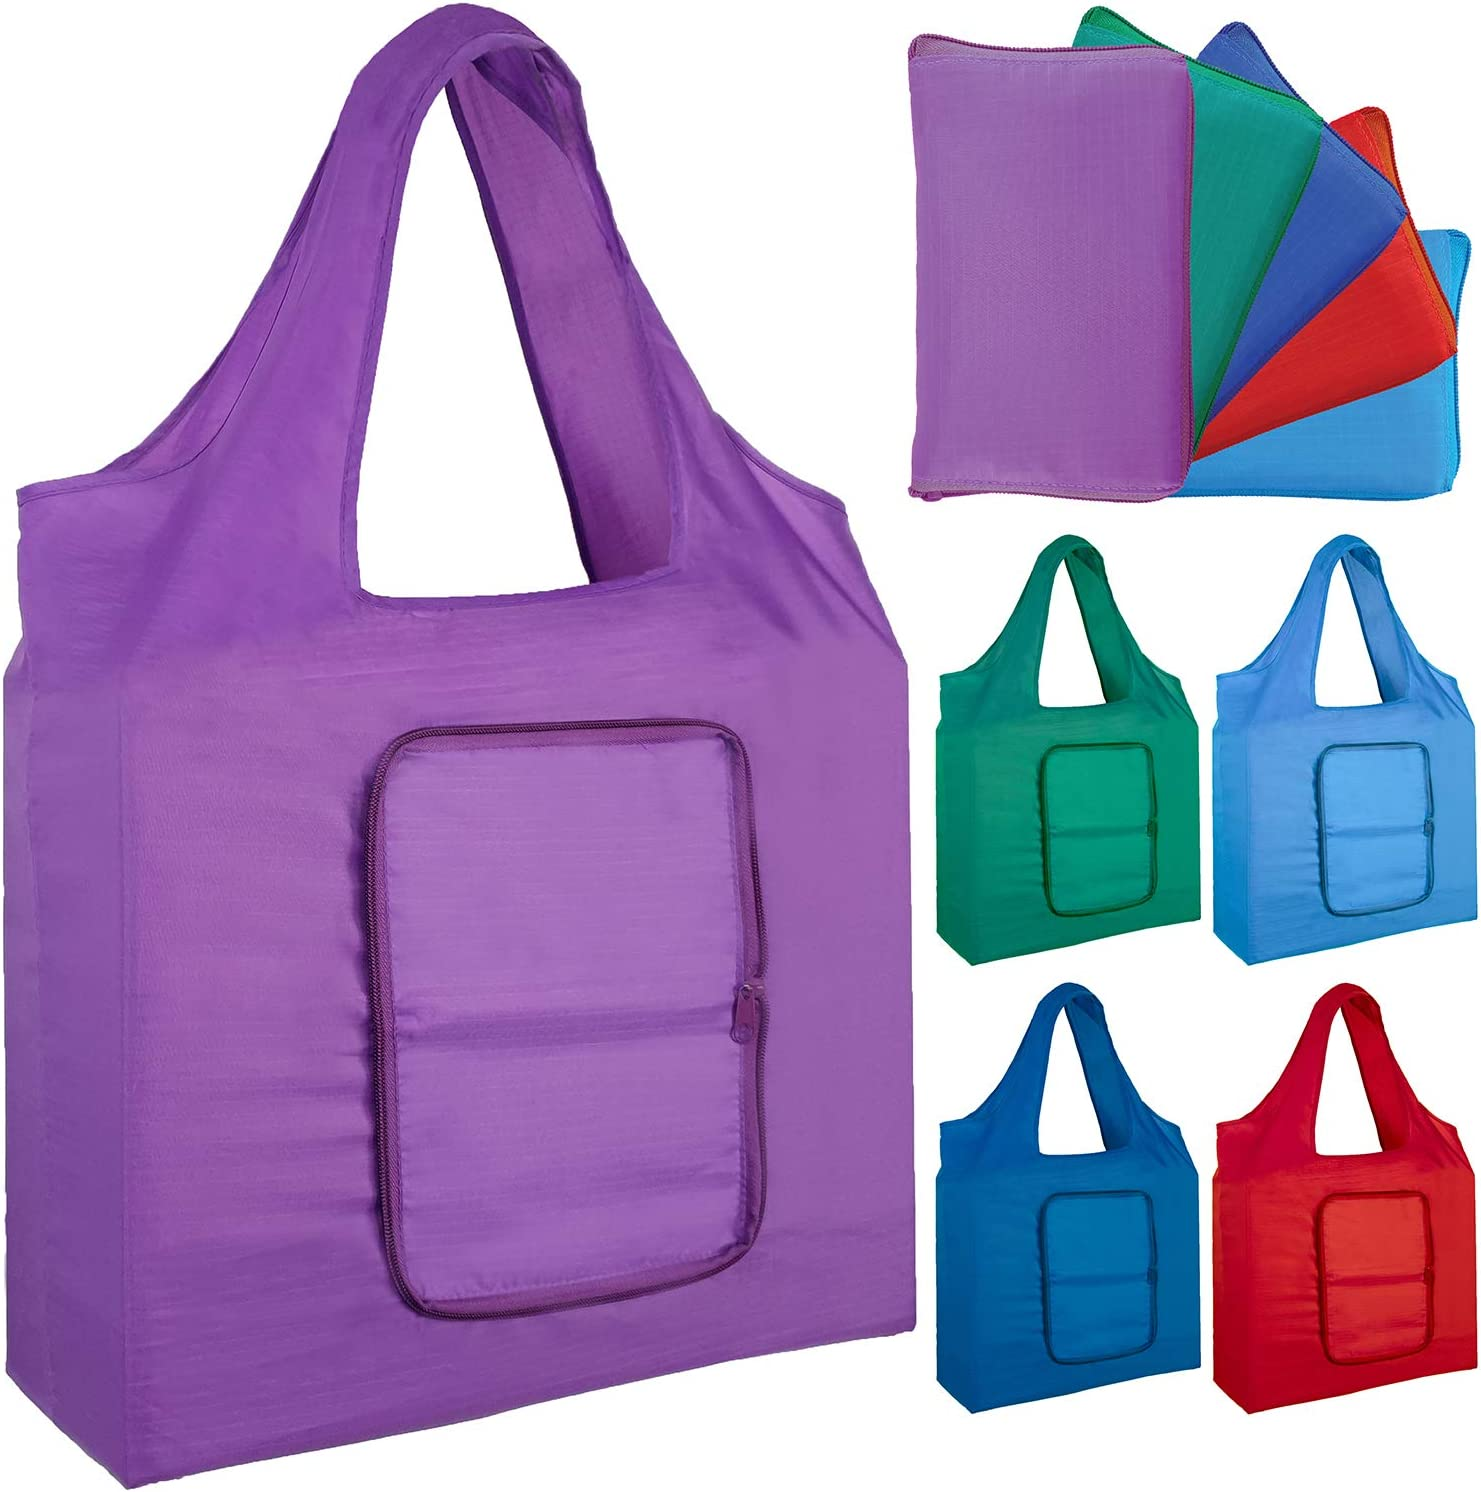 Reusable Grocery Bags for Shopping (set of 5), Foldable Into Pouch, Extra Large & Durable Heavy Duty Shopping Totes, Washable, Long Handles & Eco Friendly Reusable Shopping Bags